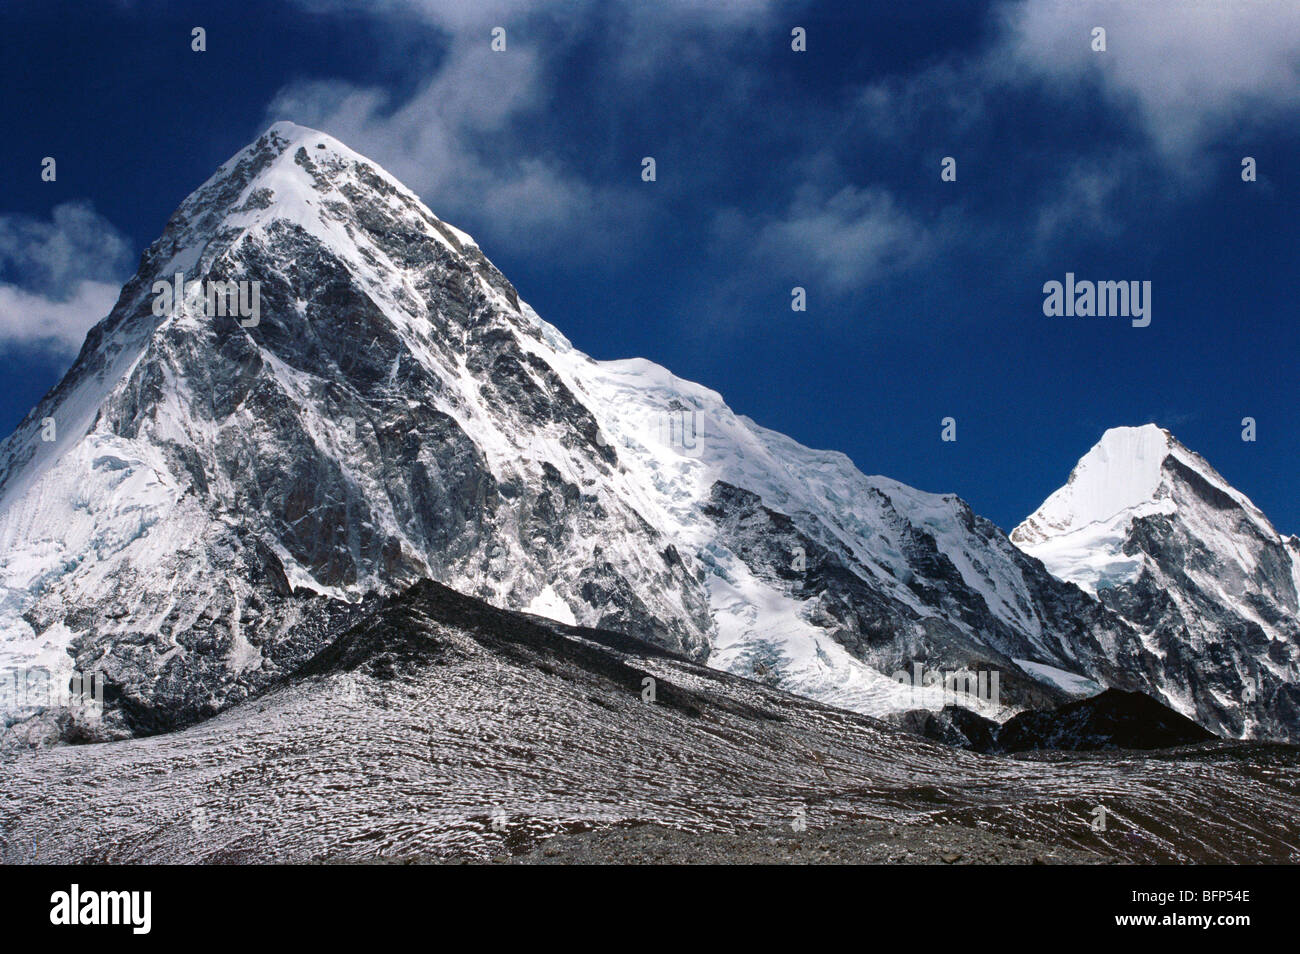 mount everest trek Kala pathar and Pumori peak Nepal - Stock Image